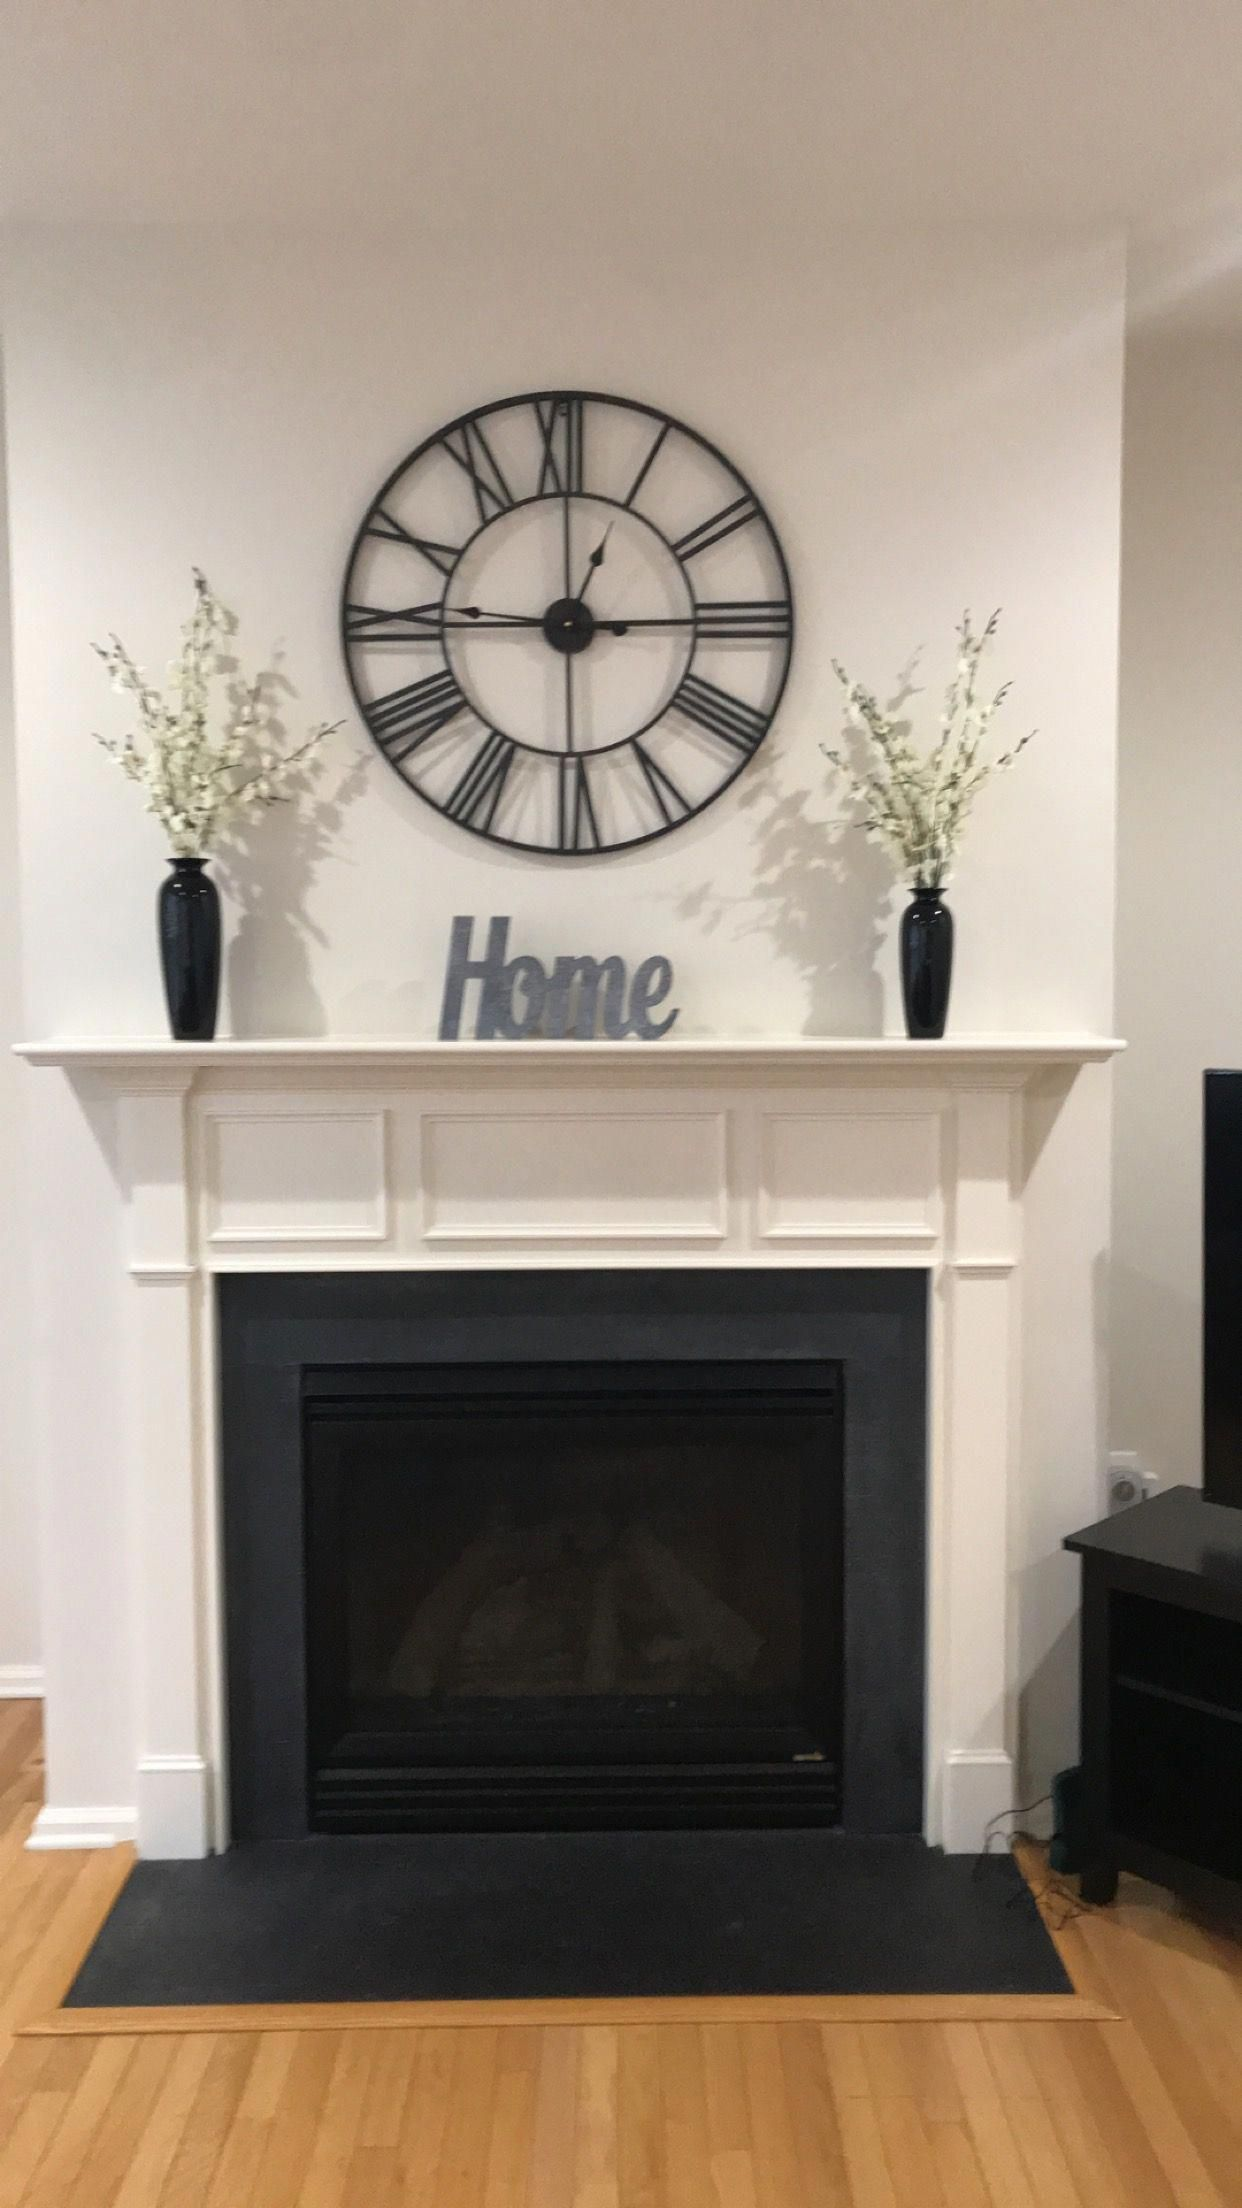 Simple Fireplace Decor Wall Clock From Wayfair Vase A Set Of 3